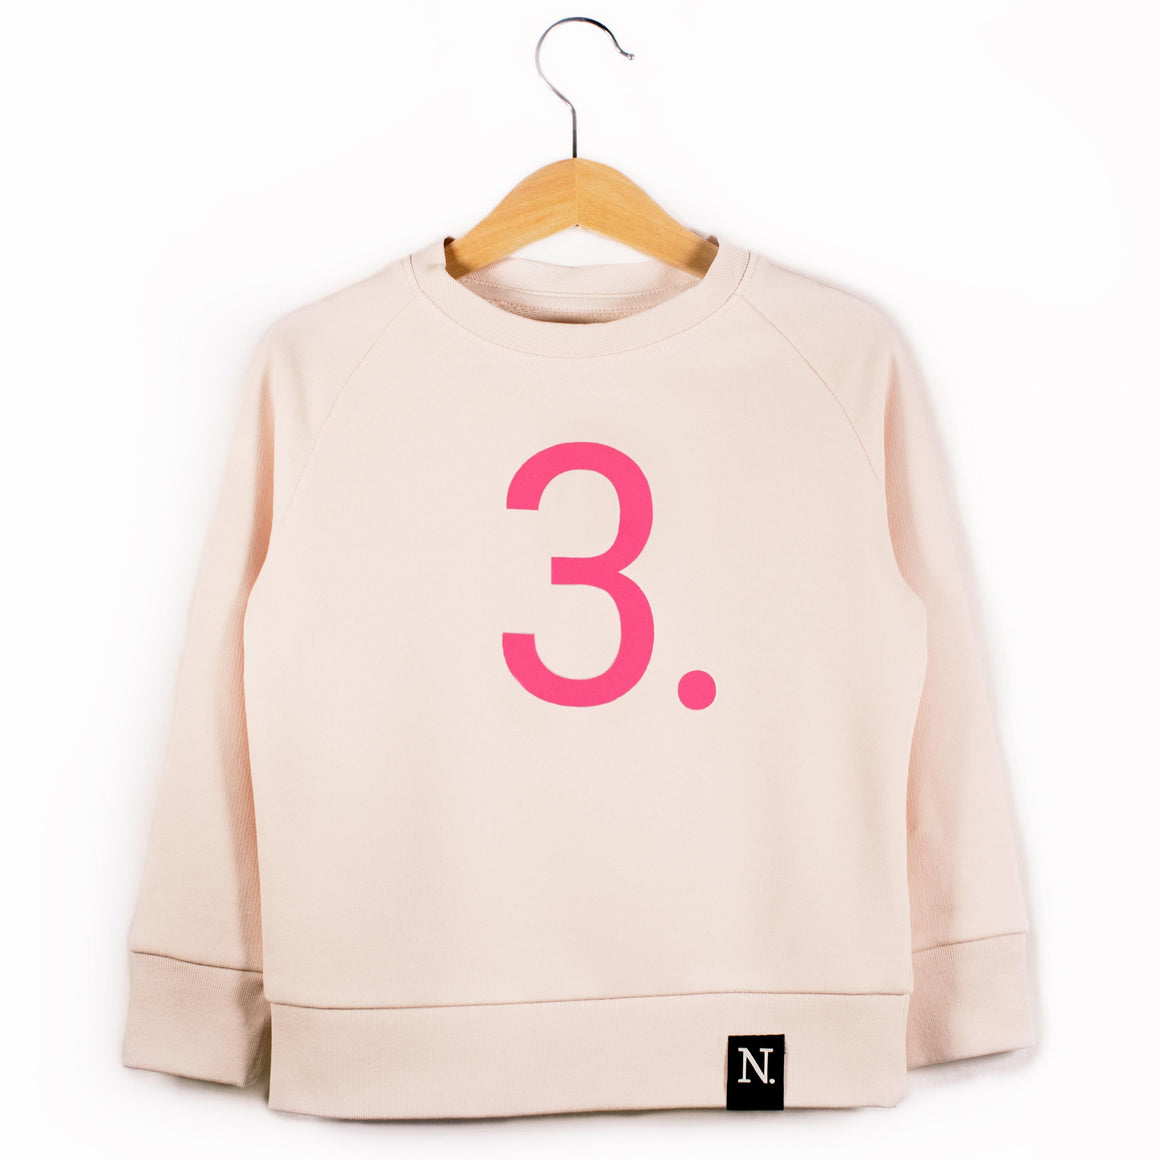 The Number 3 pink sweatshirt